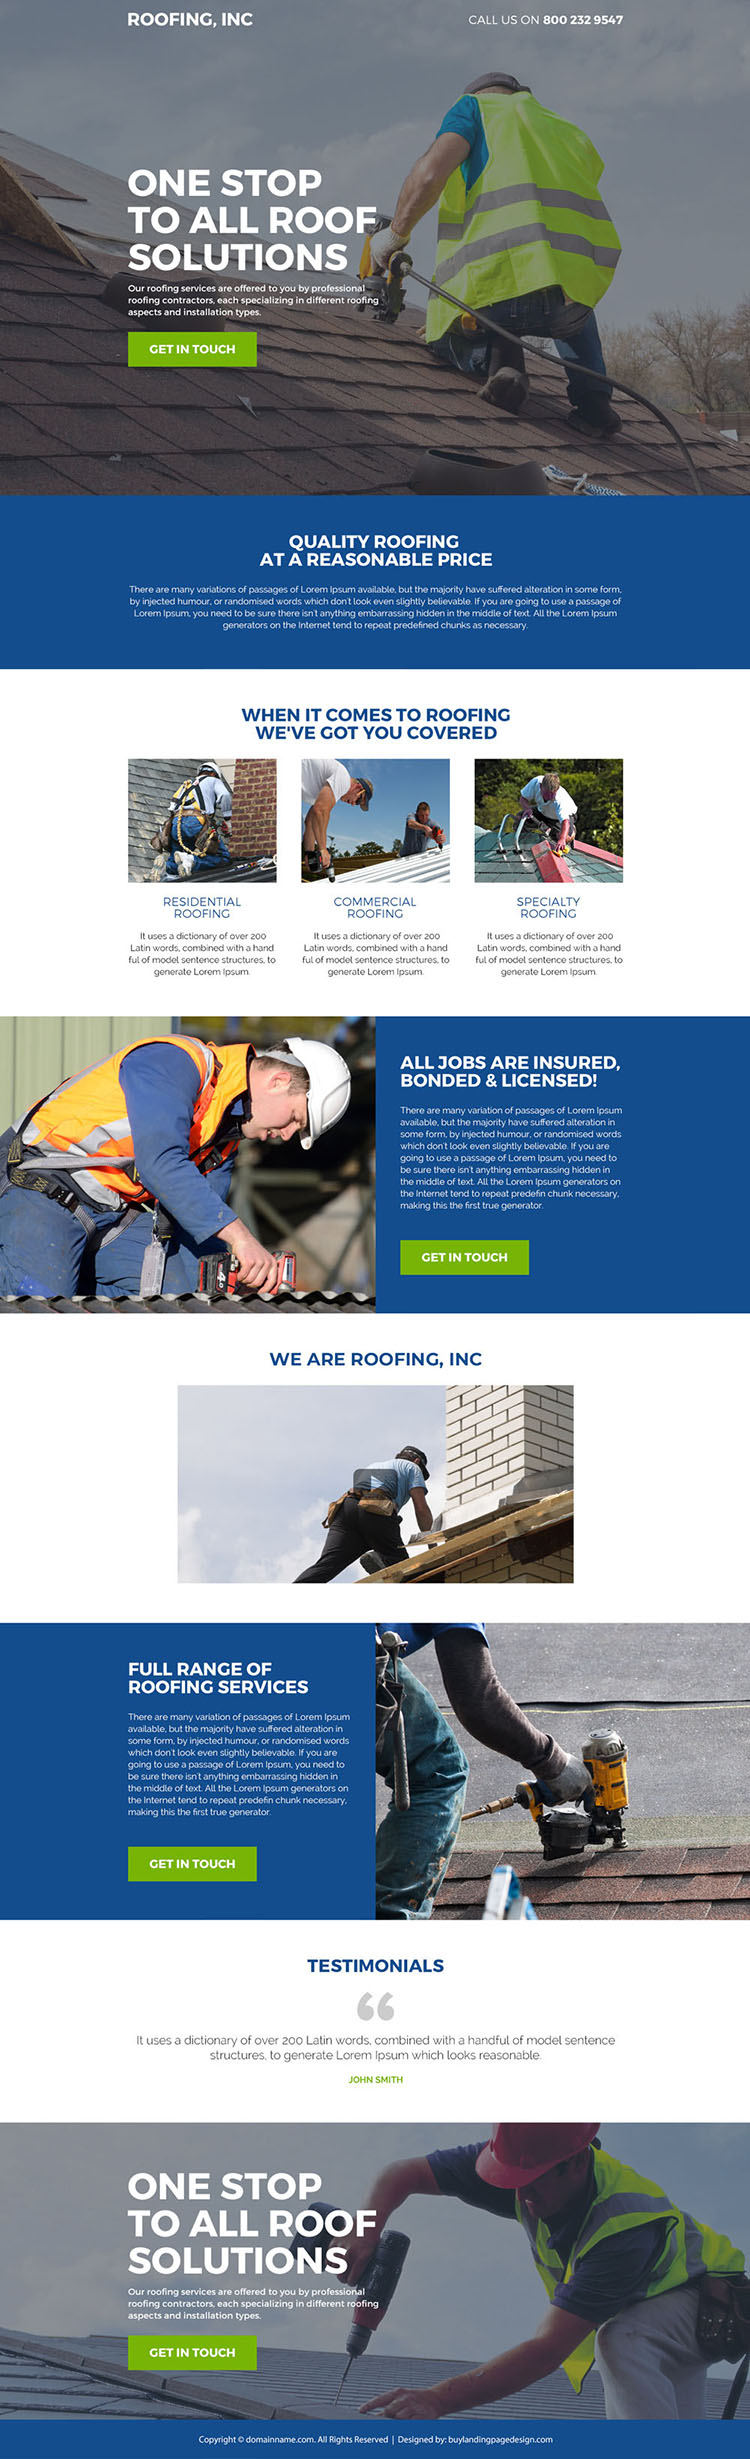 professional roofing contractors responsive landing page design